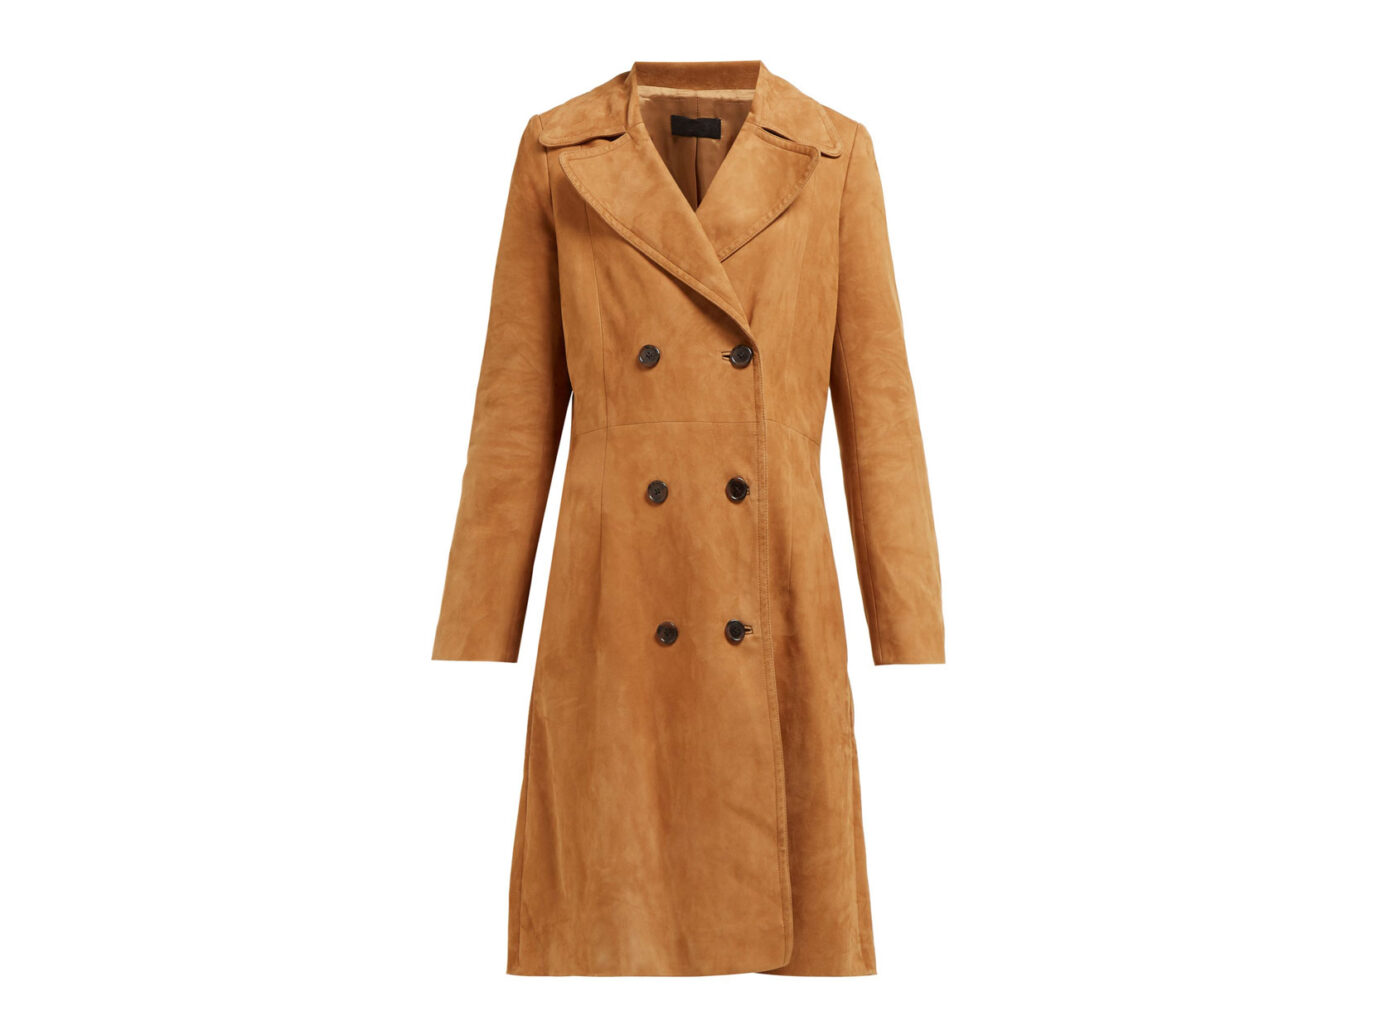 Nili Lotan Double Breasted Suede Trench Coat